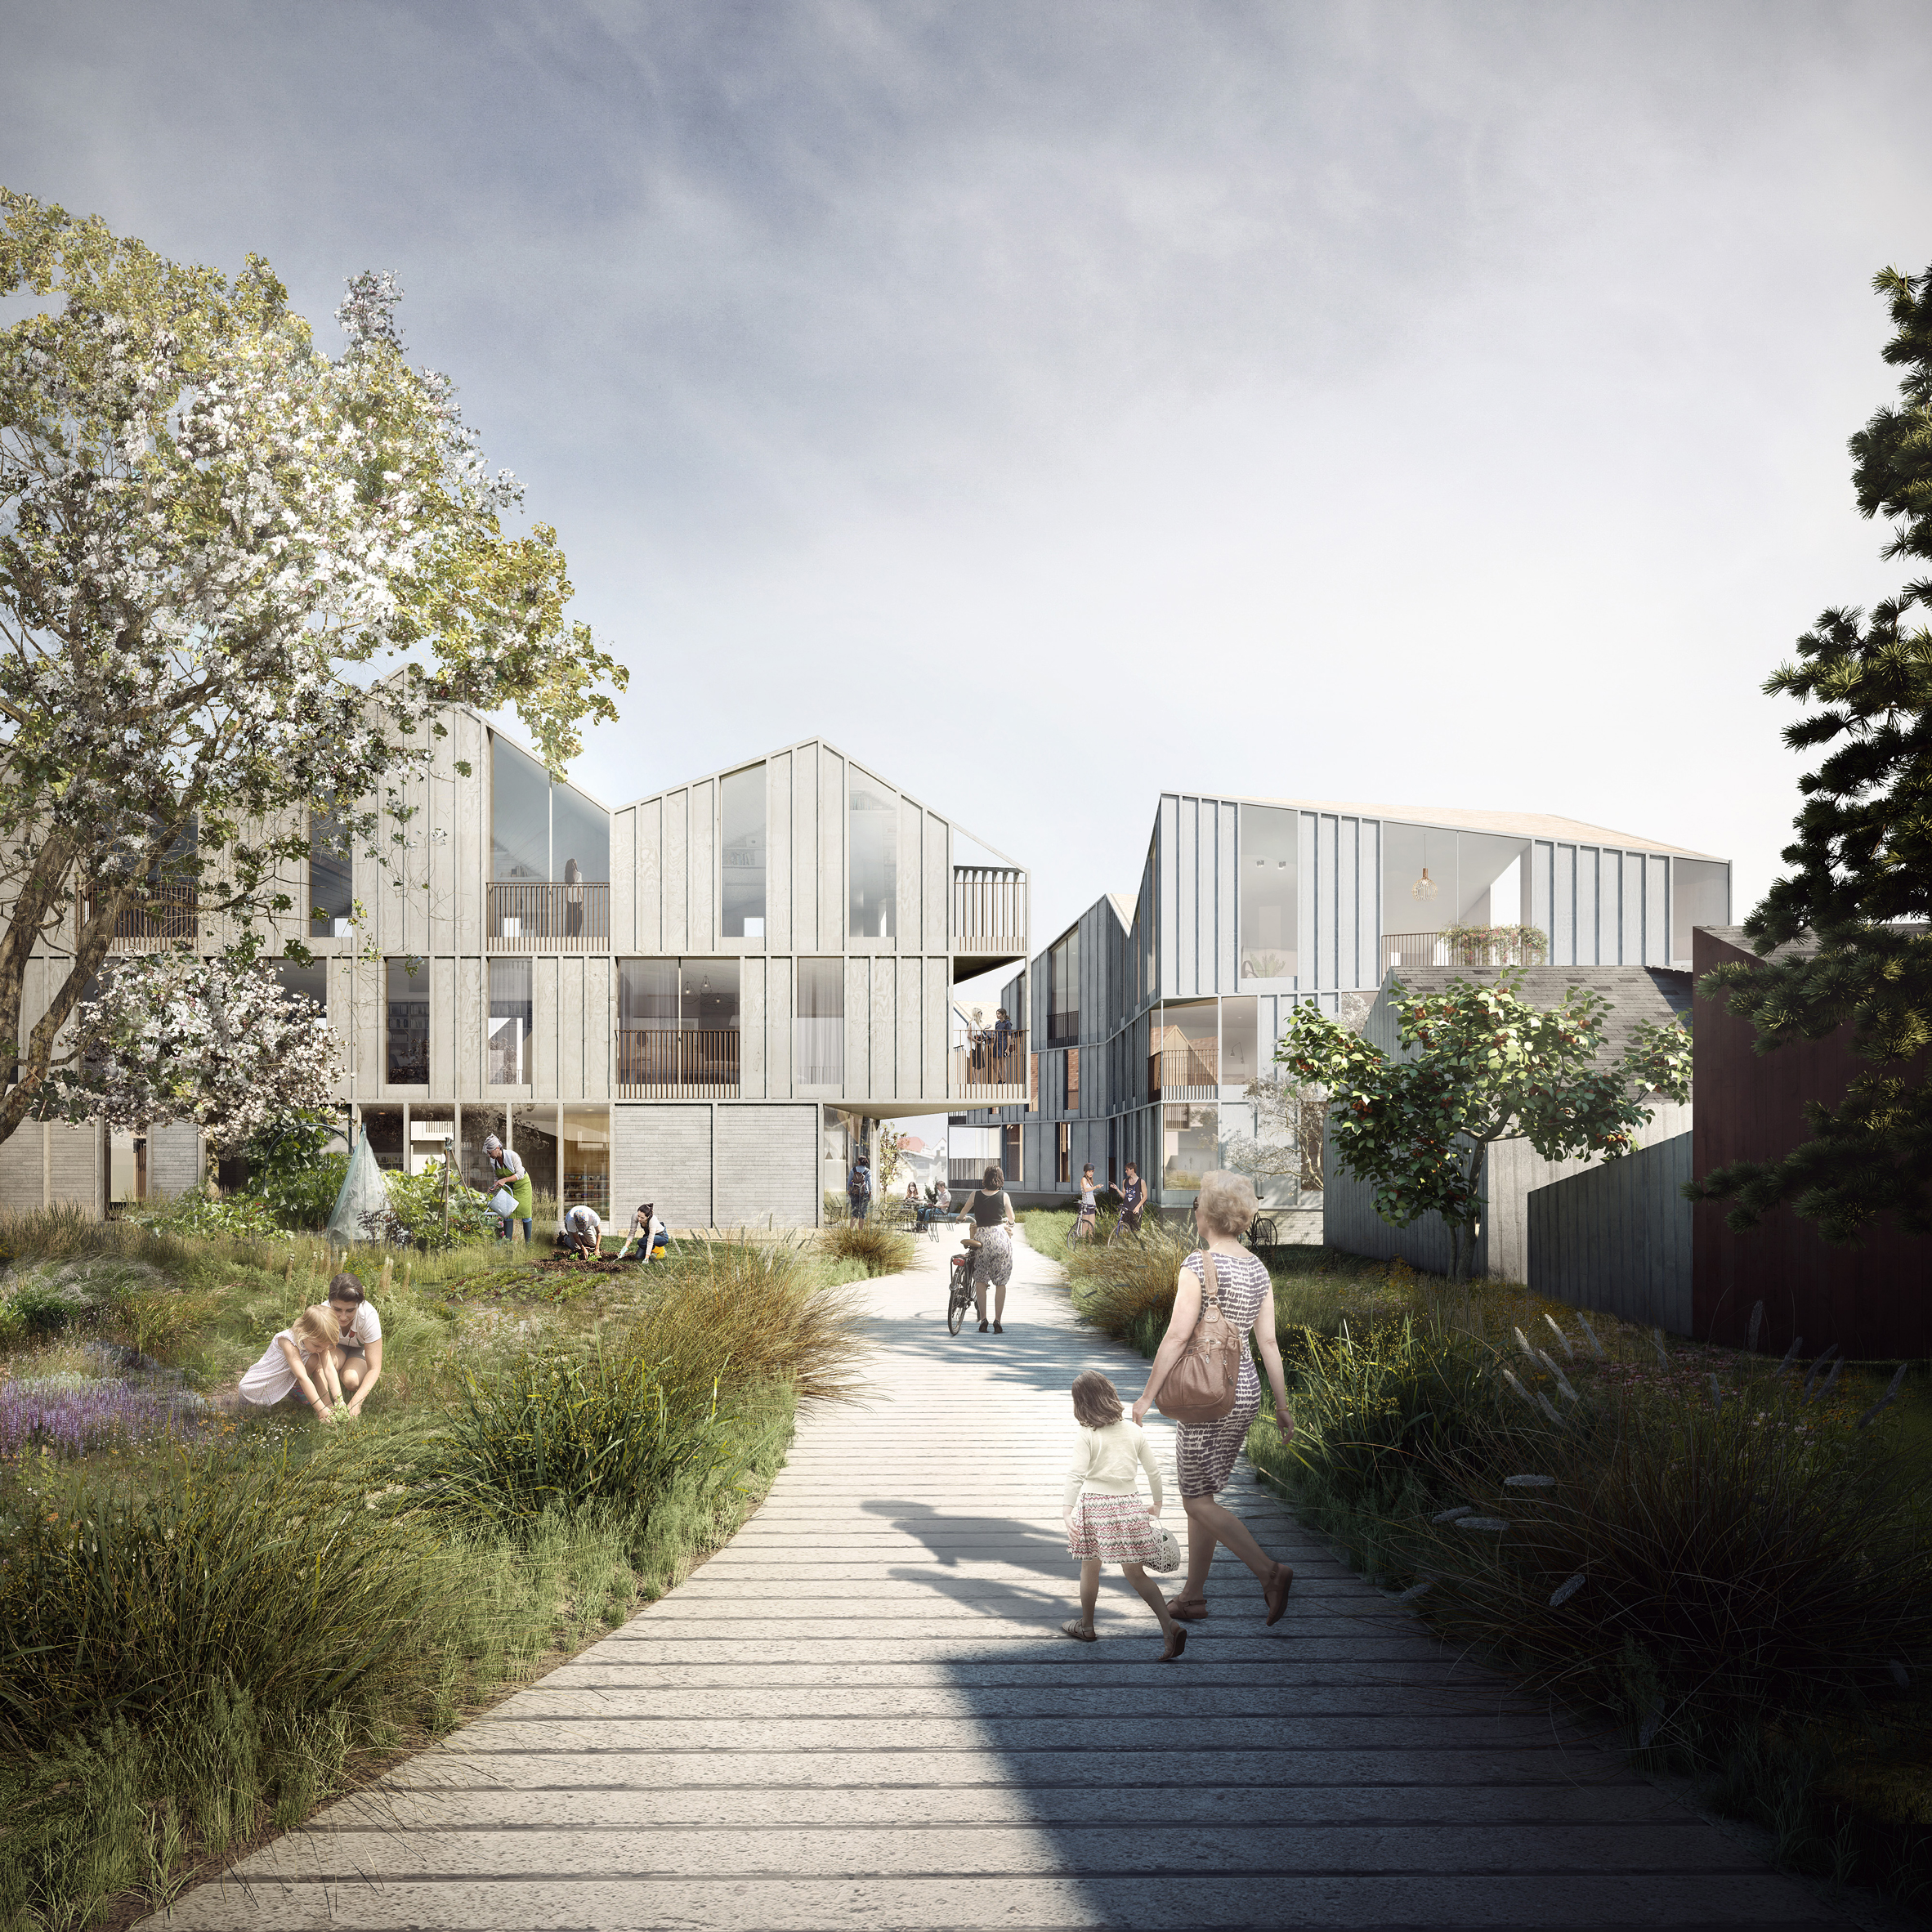 Delicieux Haptic Designs Elderly Housing For Norway To Encourage Residents To  Socialise